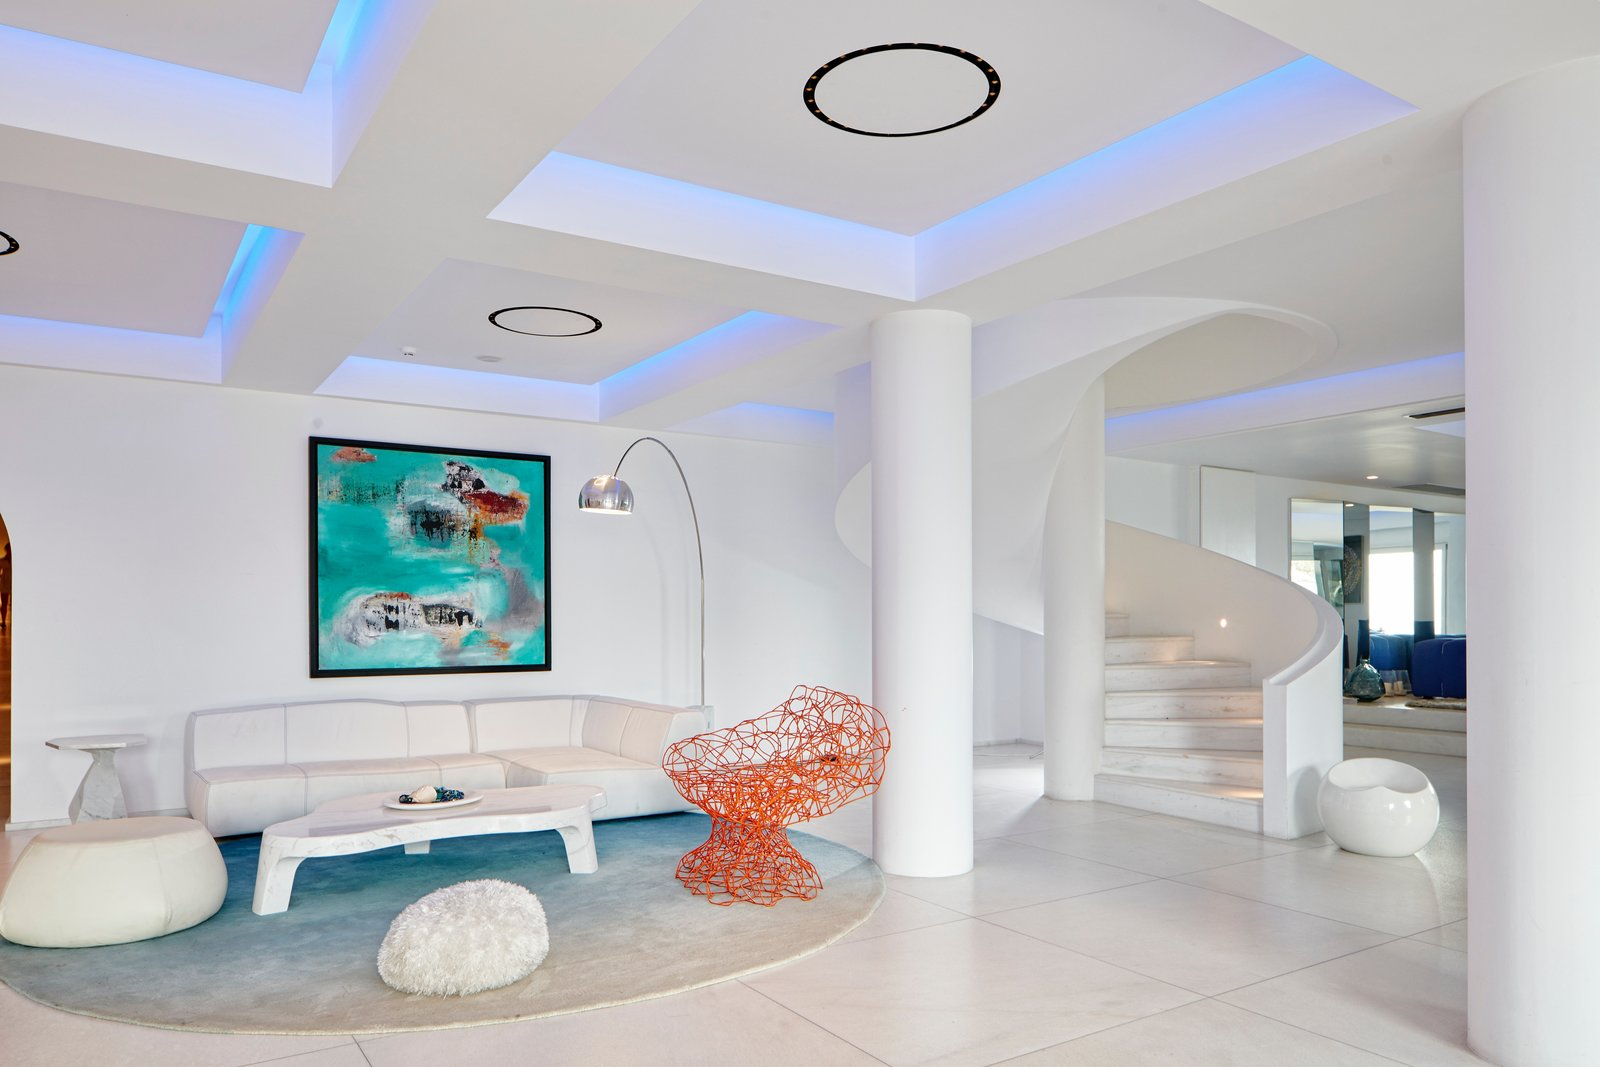 Living Room, Accent Lighting, Floor Lighting, Chair, Ottomans, Rug Floor, Sectional, and Coffee Tables Pillars and a spiral staircase act as modern interpretations of ancient Greek design themes. The orange Coralla chair was designed by the Campana Brothers for Edra and makes a sculptural statement.  Photo 7 of 12 in This Revived Greek Resort Will Soon Be at the Top of Your List